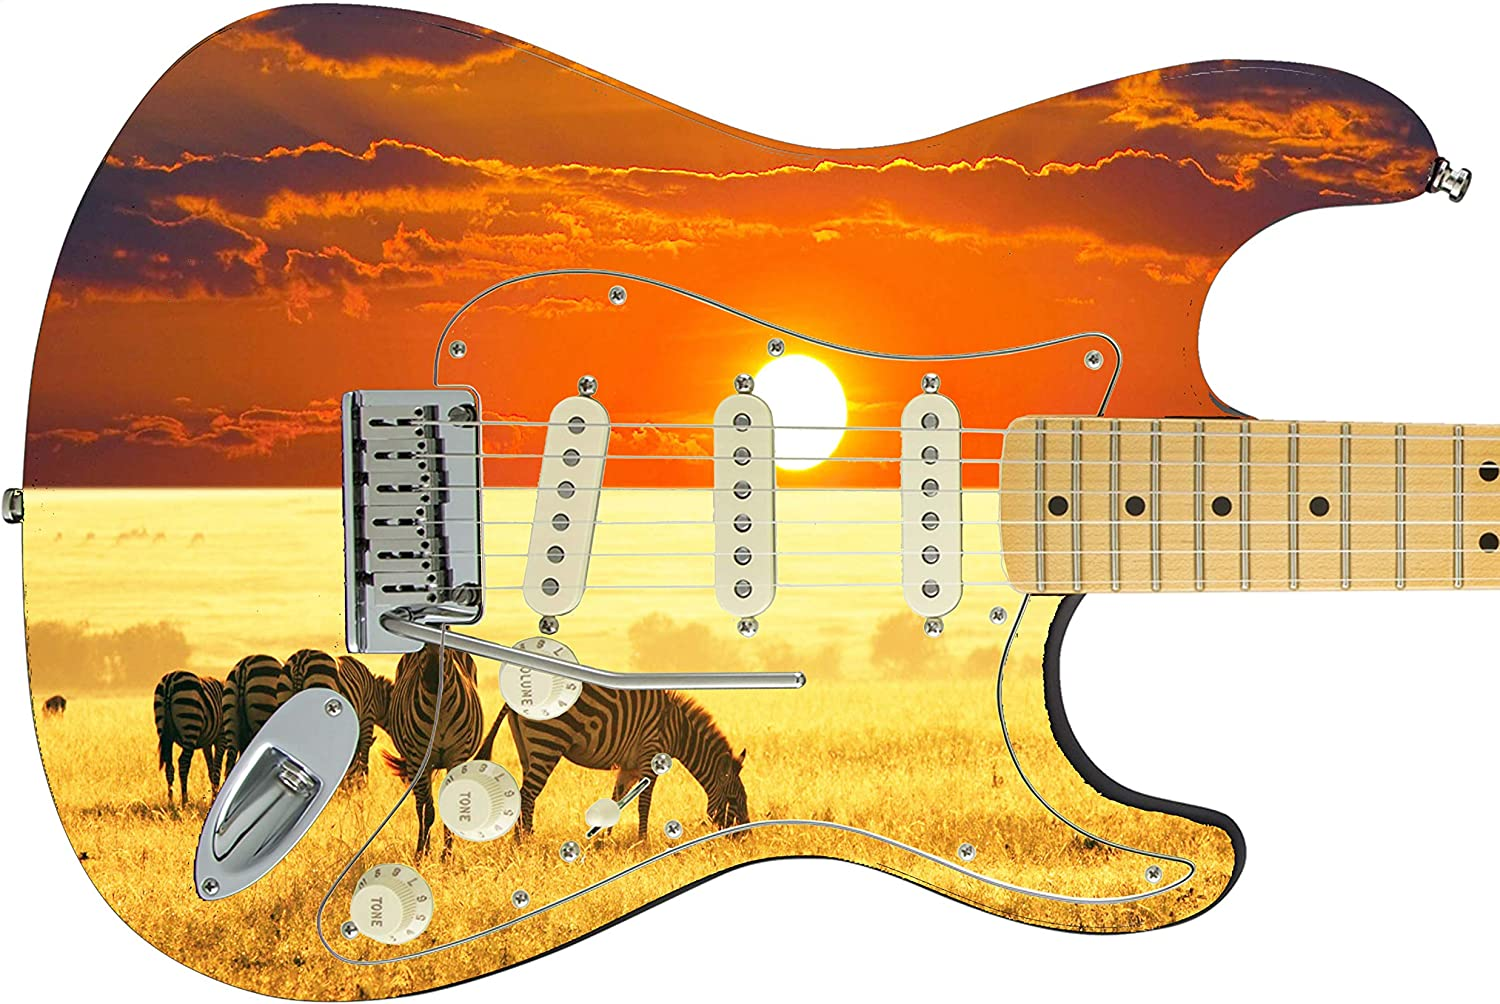 Animer and price revision 039 Righty Electric Guitar Wildest All stores are sold Africa Skin Dreams